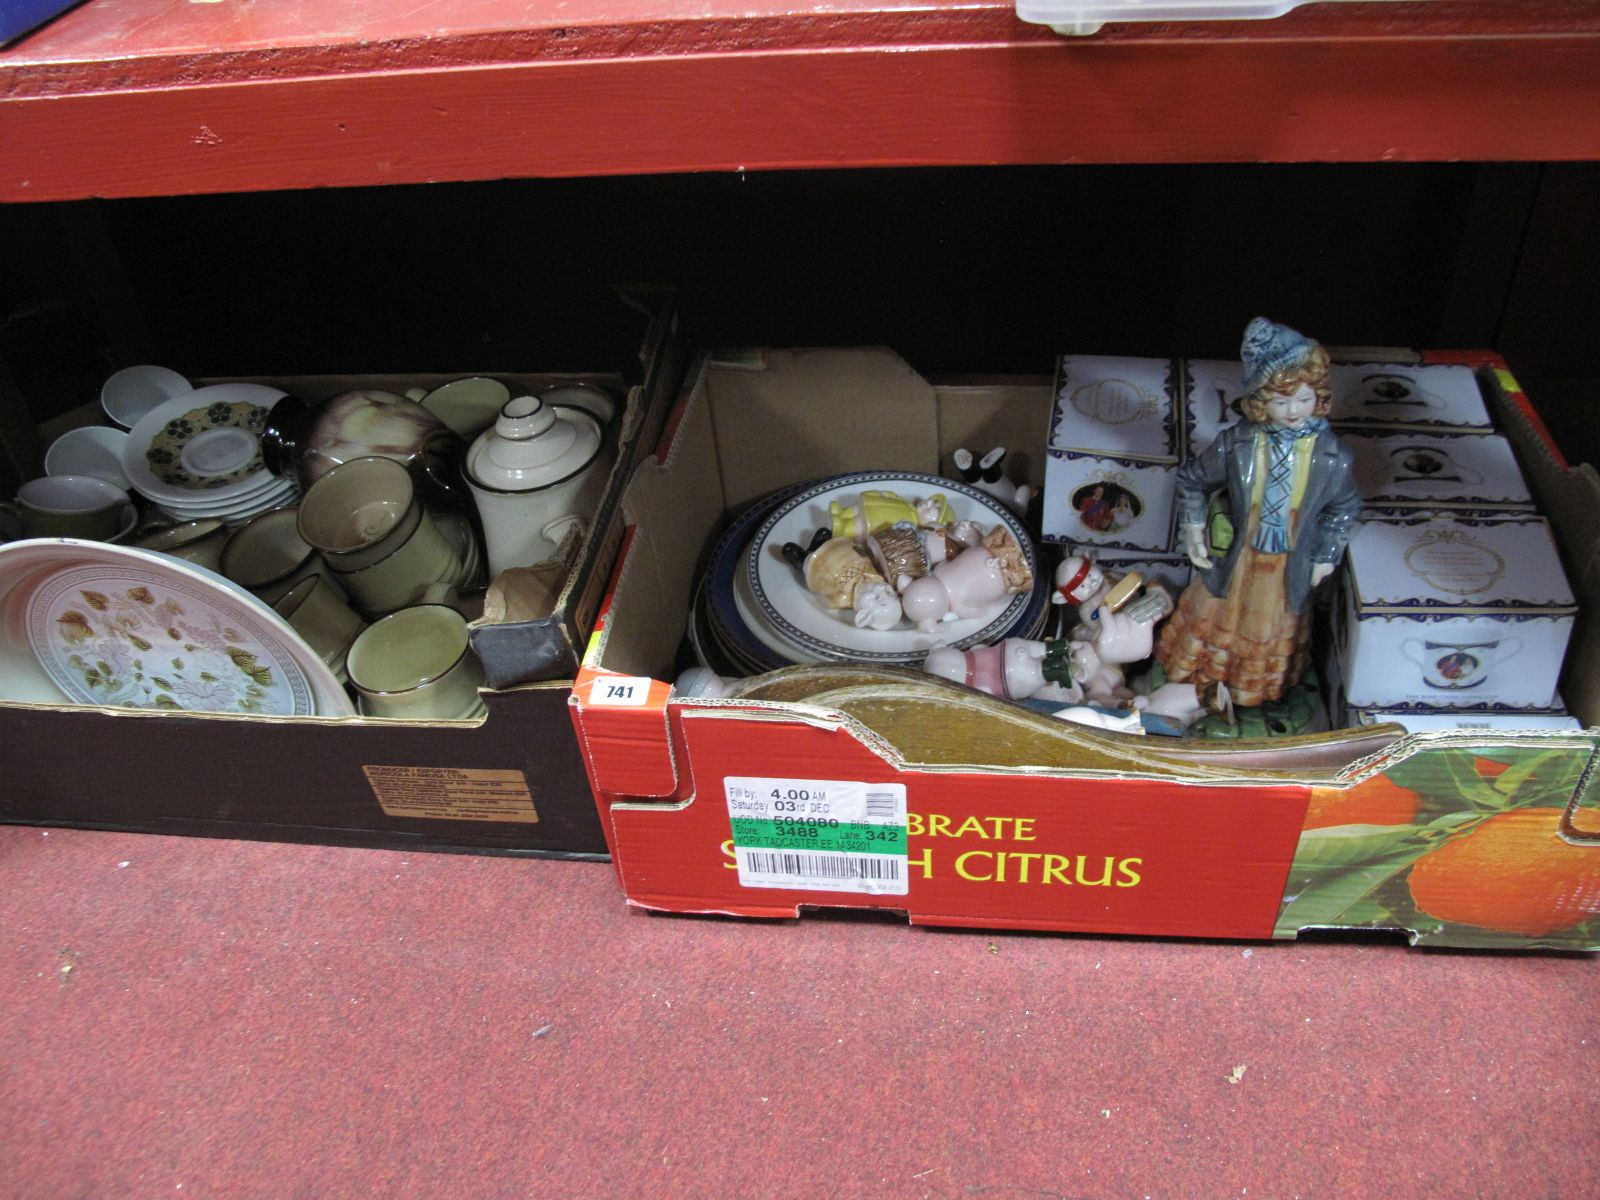 Lot 741 - A Quantity of Ceramic 'Piggies', royal wedding mugs, Denby, Doulton and other pottery, etc:- Two